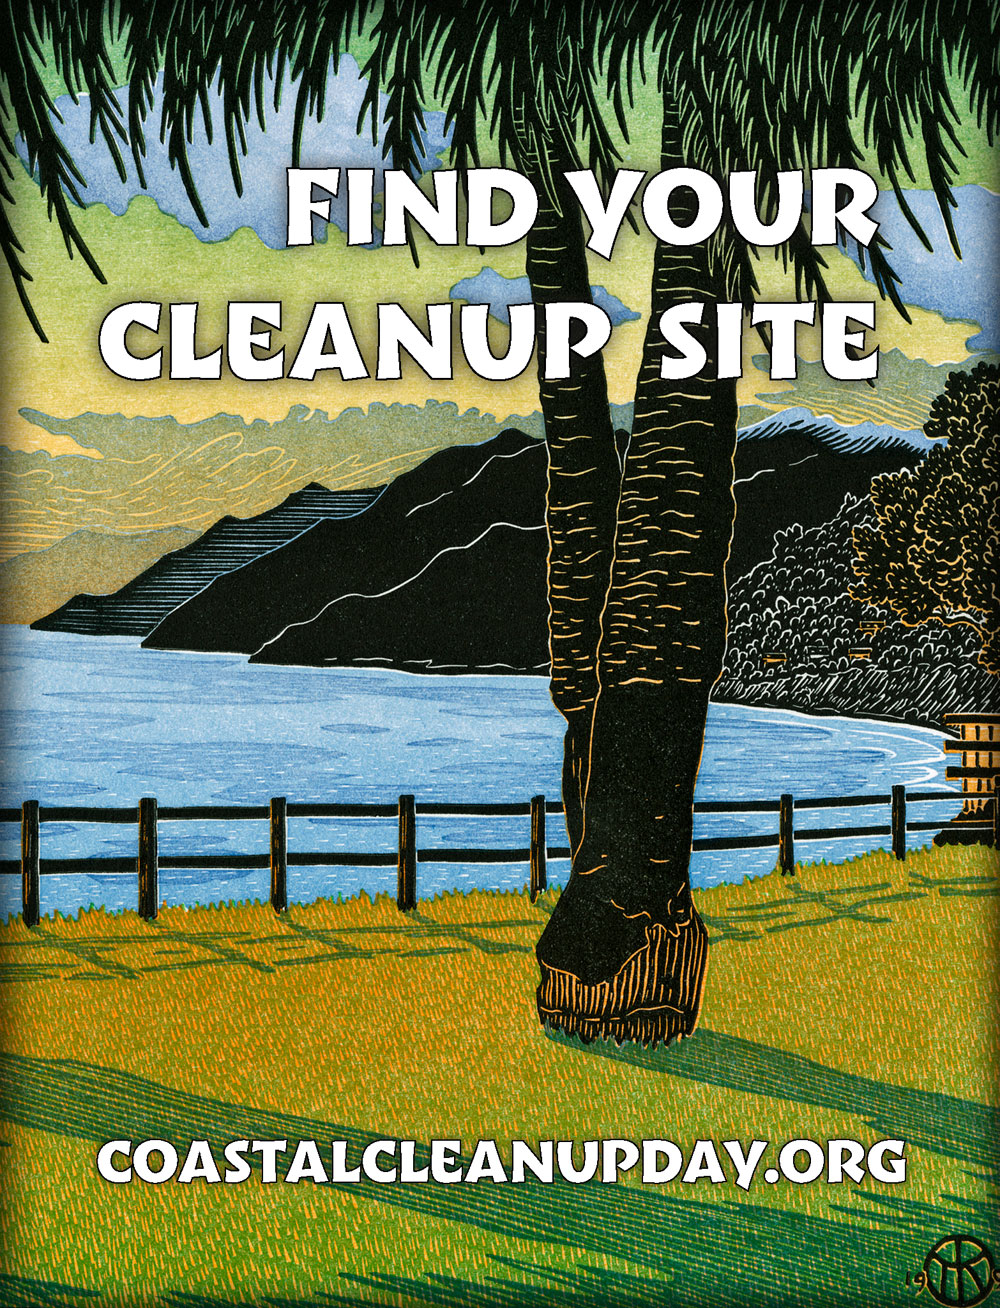 Find your cleanup site